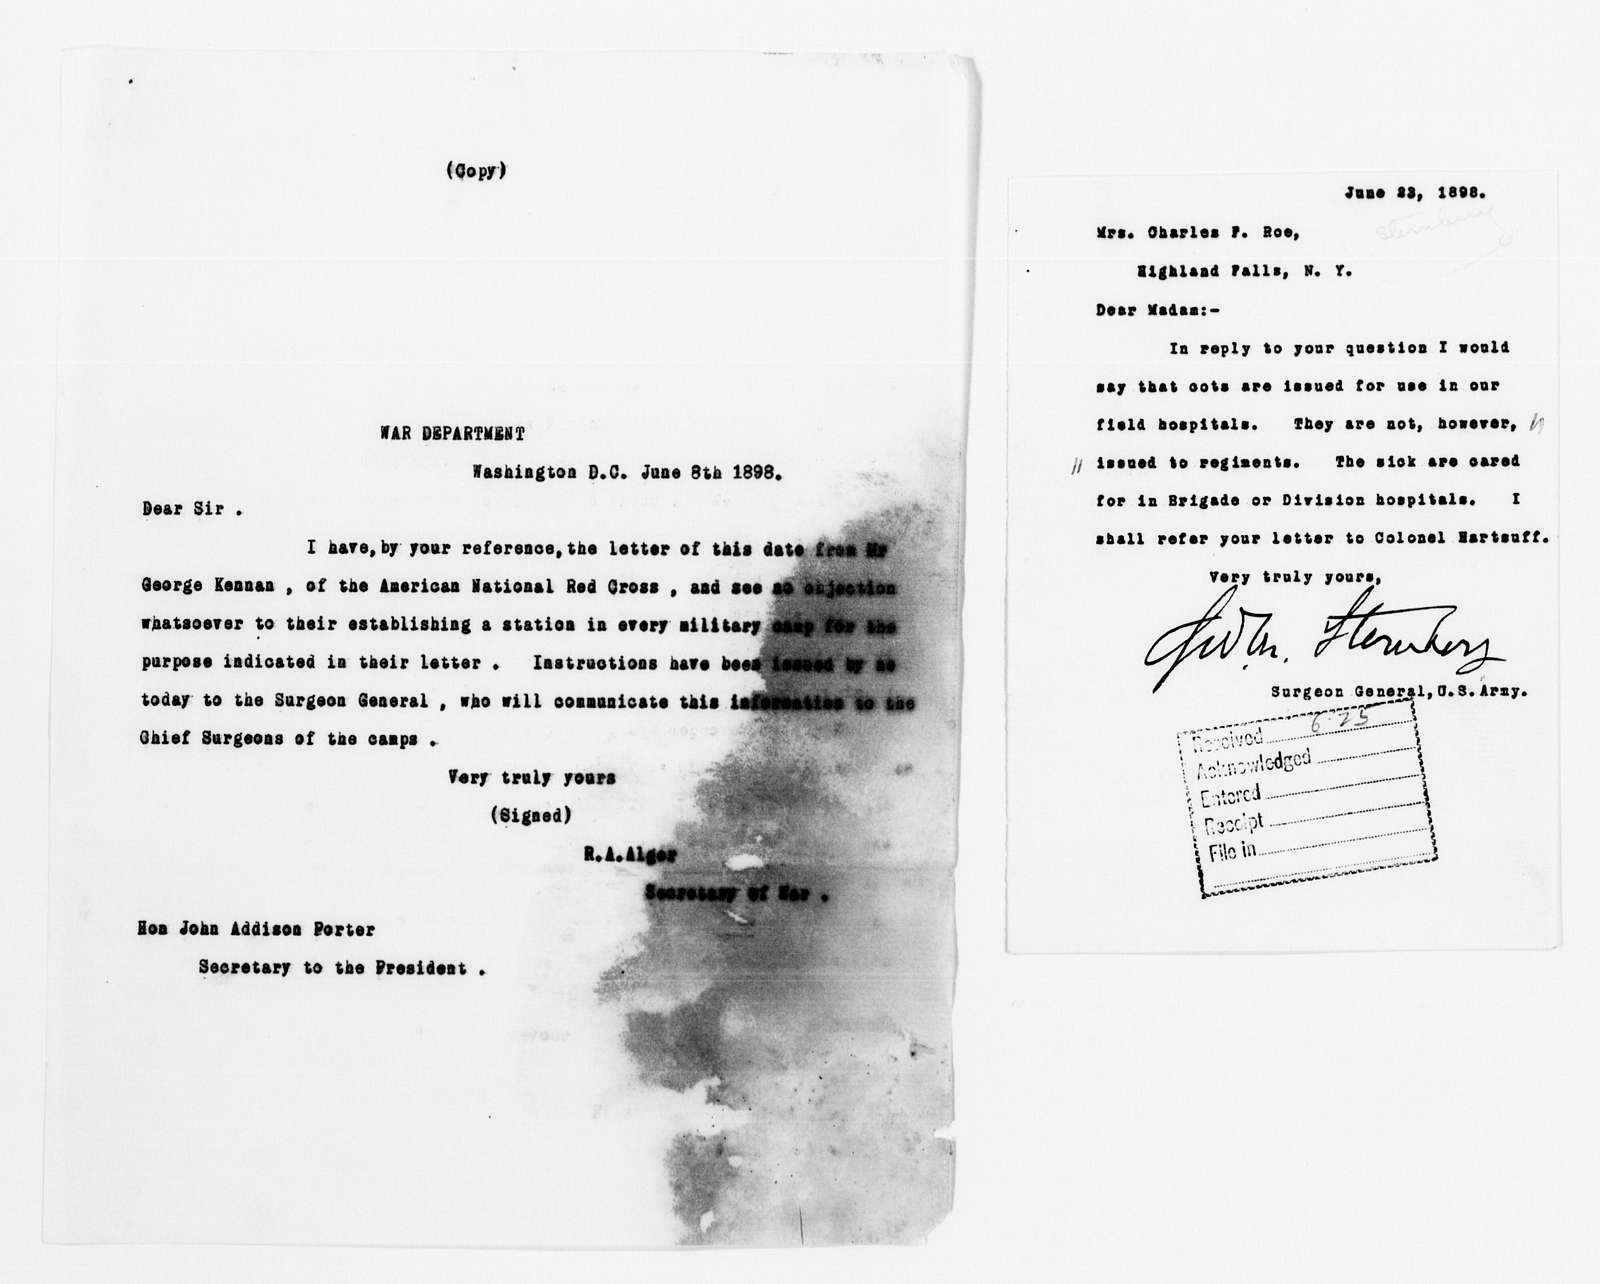 Clara Barton Papers: Red Cross File, 1863-1957; American National Red Cross, 1878-1957; Relief operations; Spanish-American War; U.S. Government; War Department, 1897-1899, undated